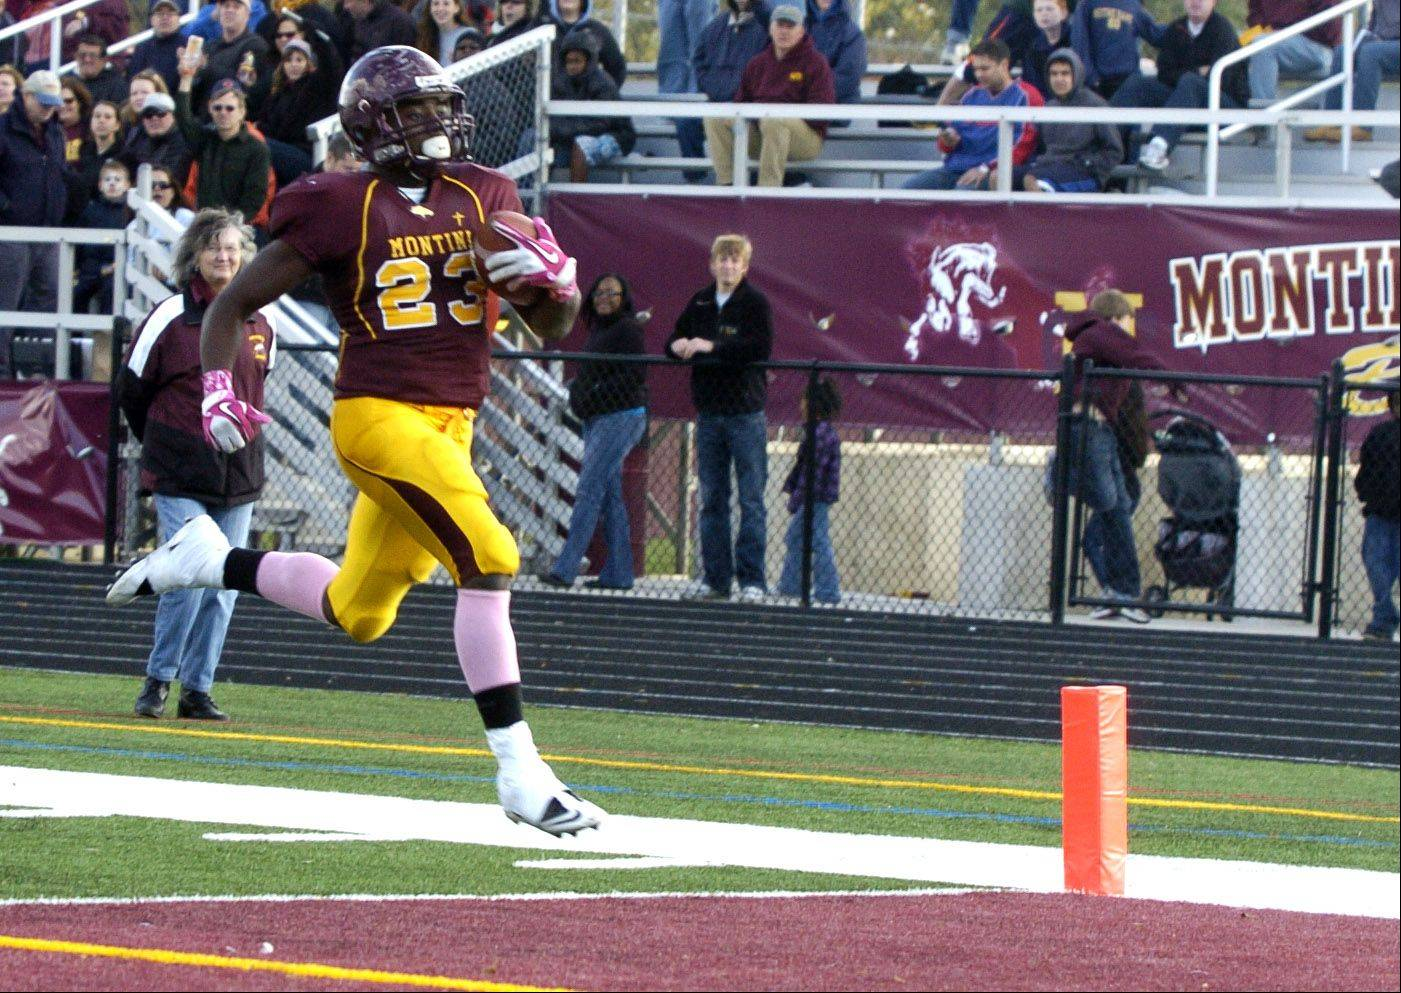 Dimitri Taylor of Montini High School scores a 4th quarter touchdown, during the IHSA 5A playoff game.